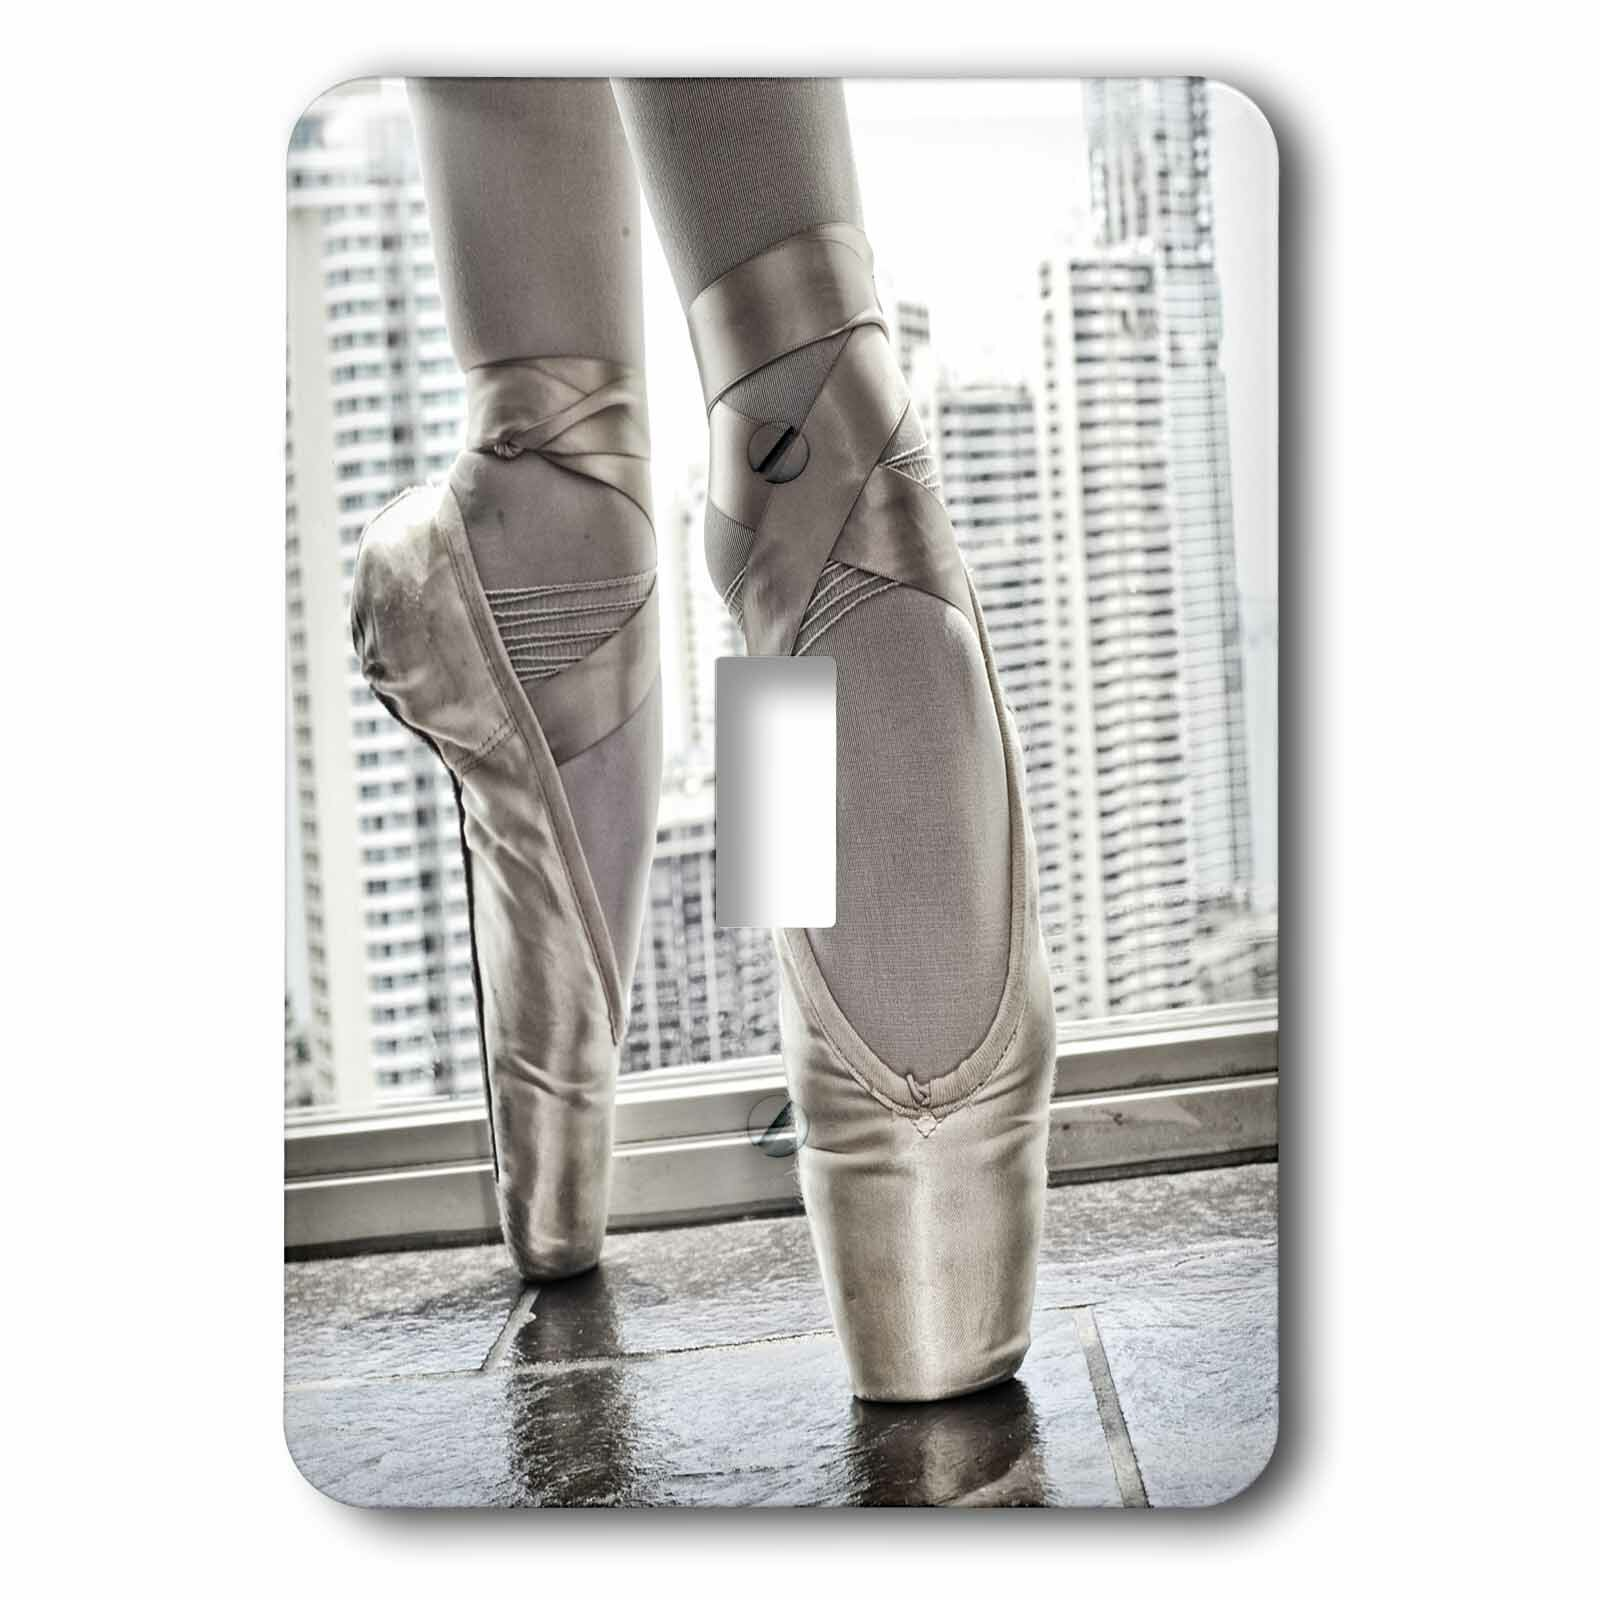 3drose Ballerina Pointe Shoes 1 Gang Toggle Light Switch Wall Plate Wayfair